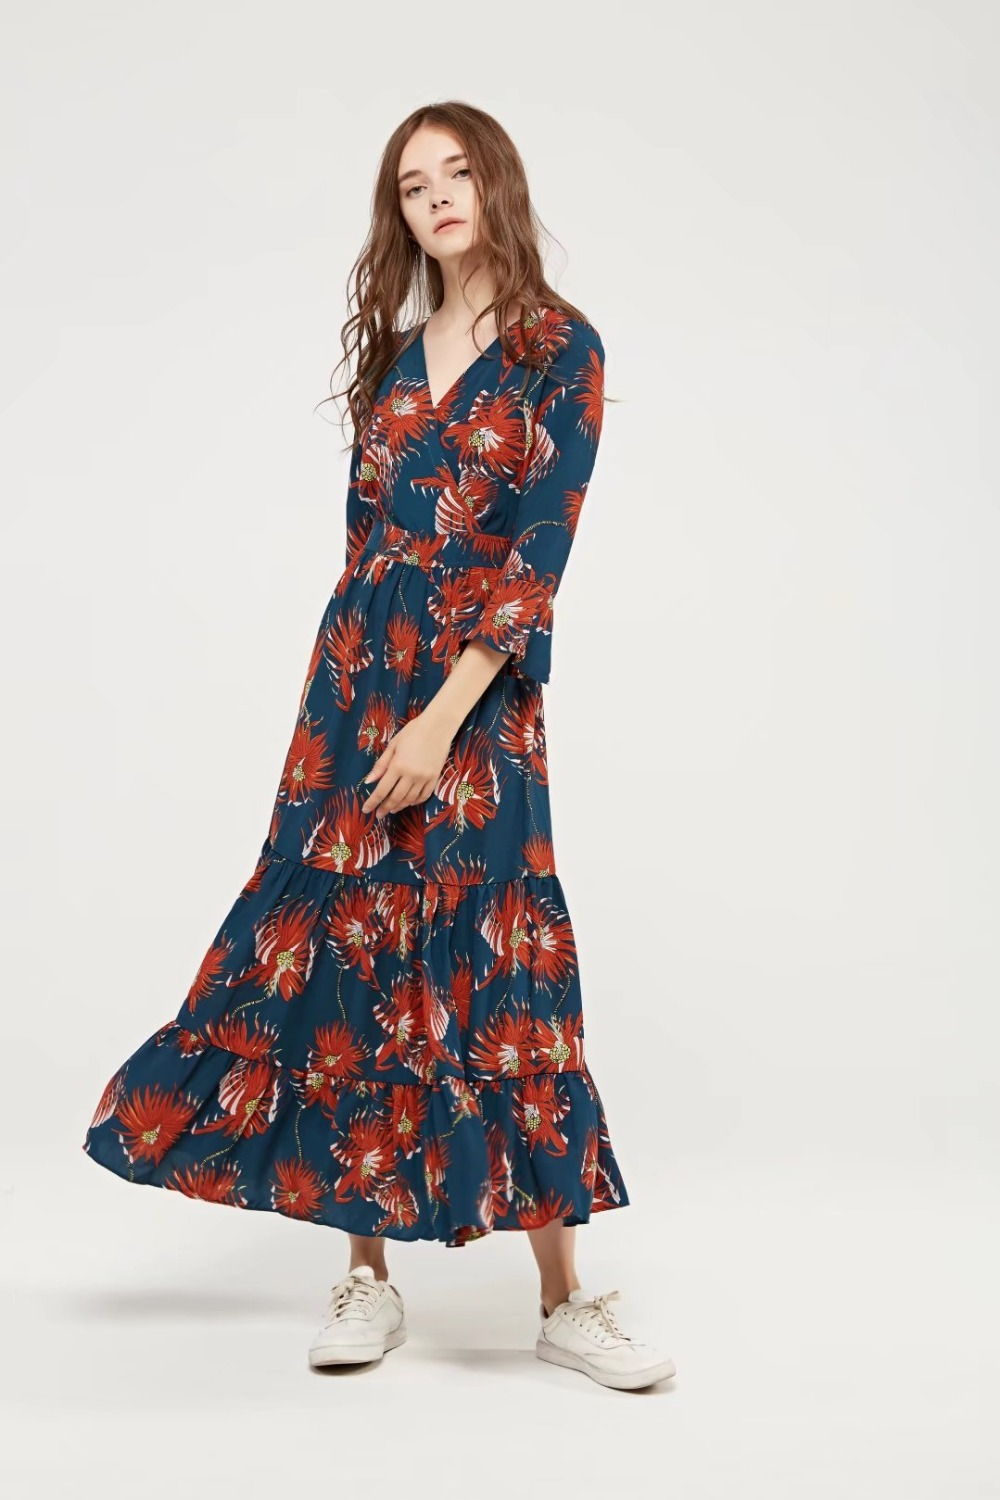 Free casual women European style v-neck long-sleeved printed dress summer sexy dress Bohemian